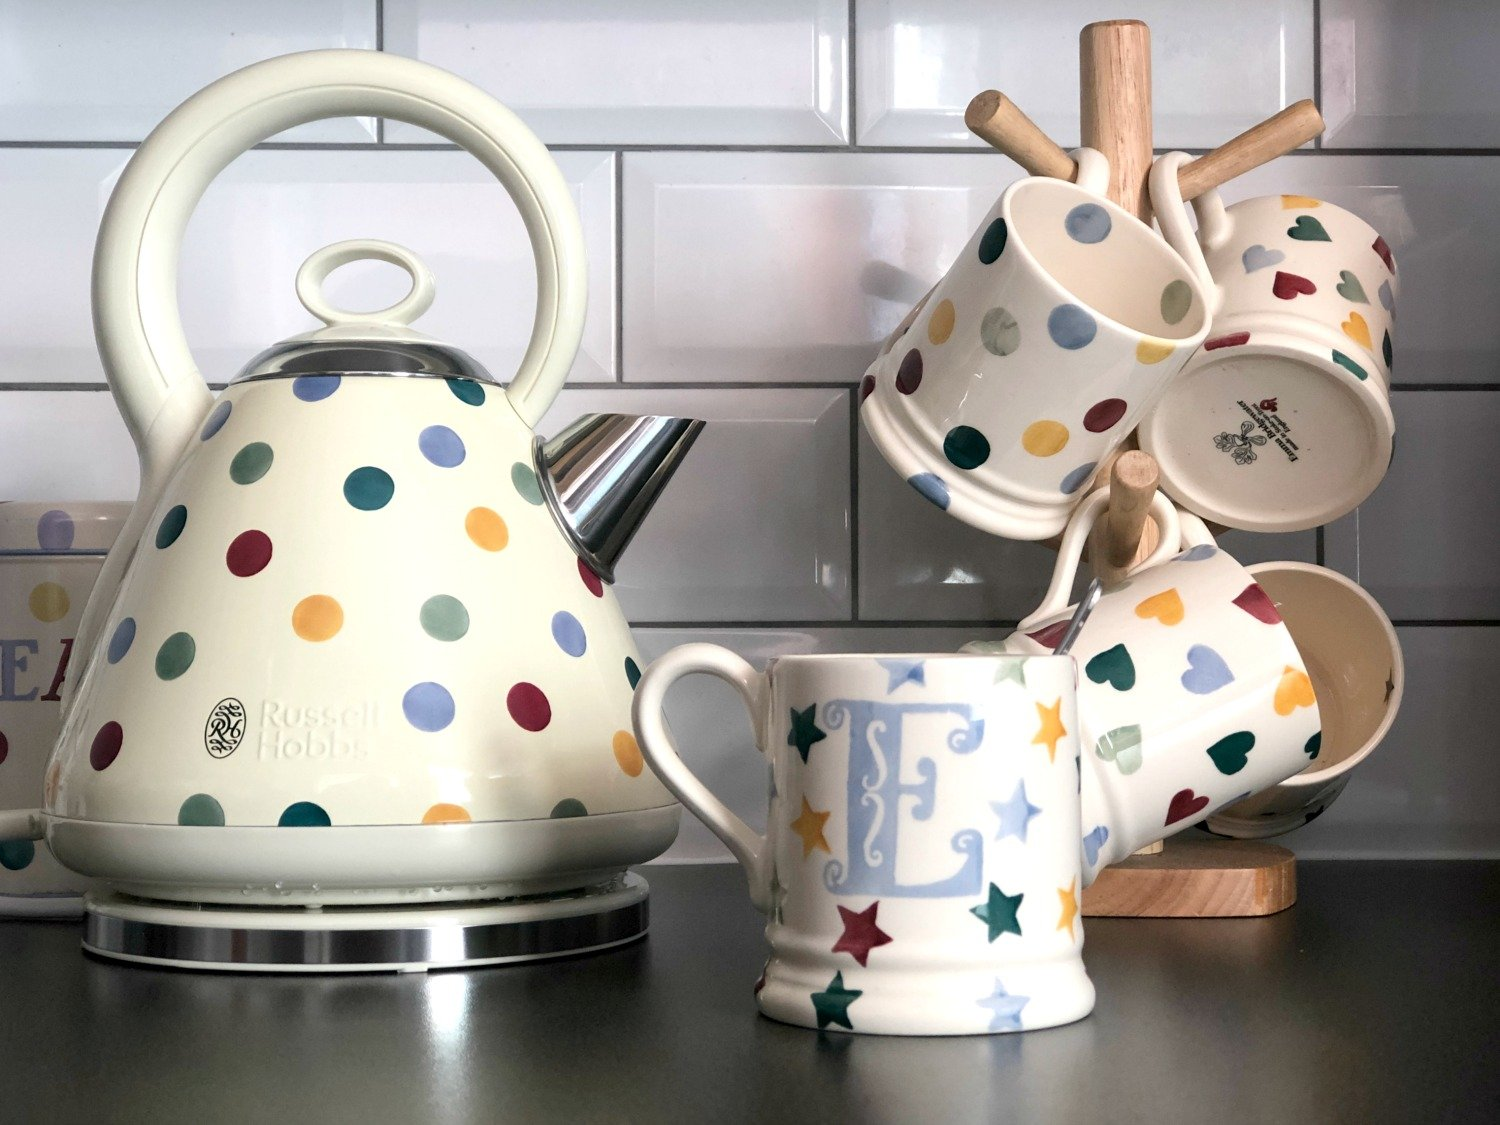 Emma Bridgewater polka dot kitchen appliances